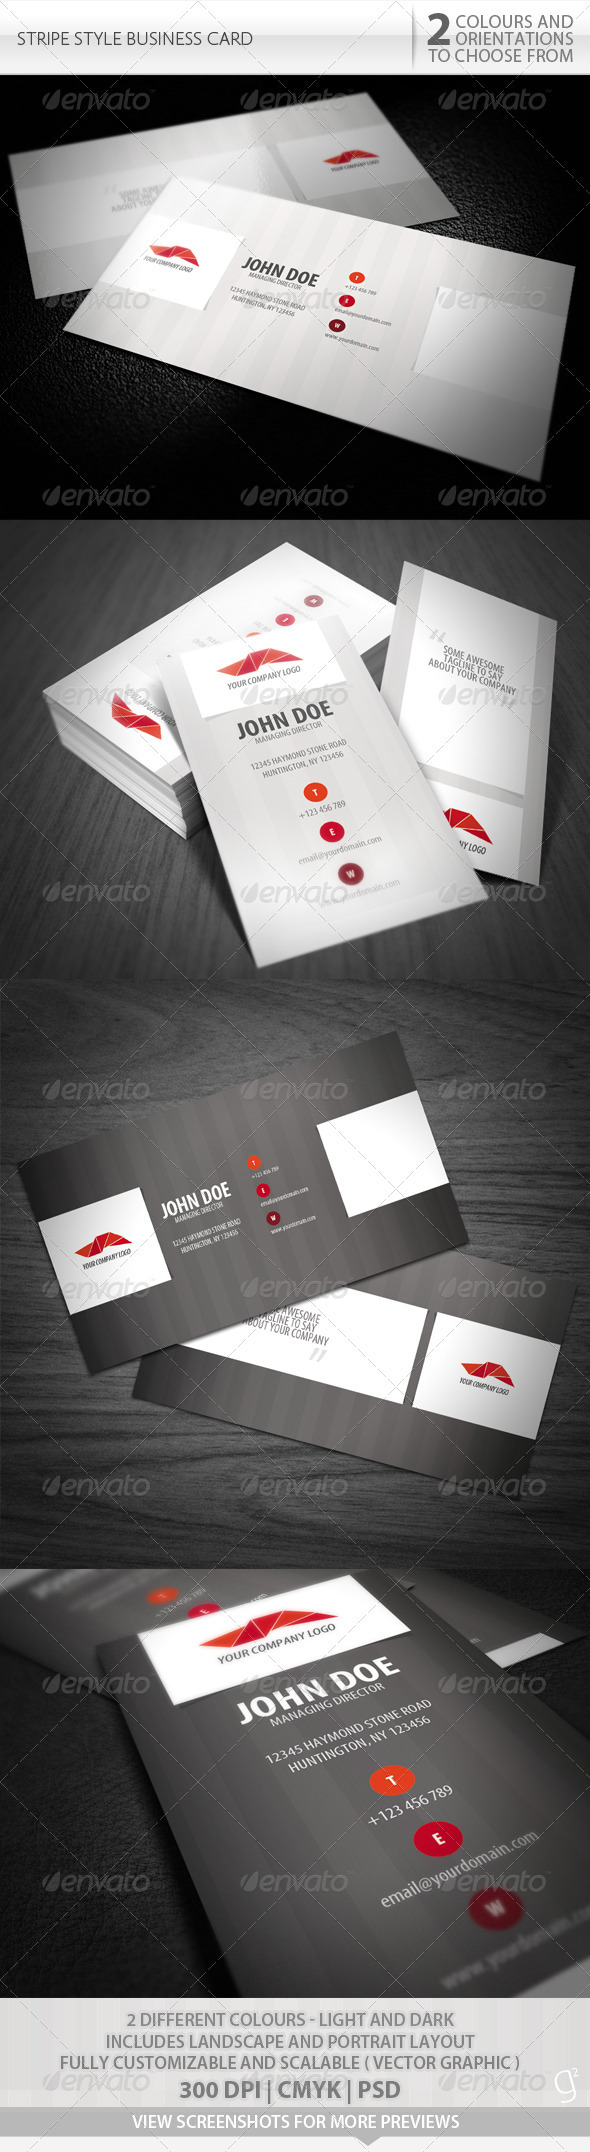 Stripe Style Business Card - Corporate Business Cards